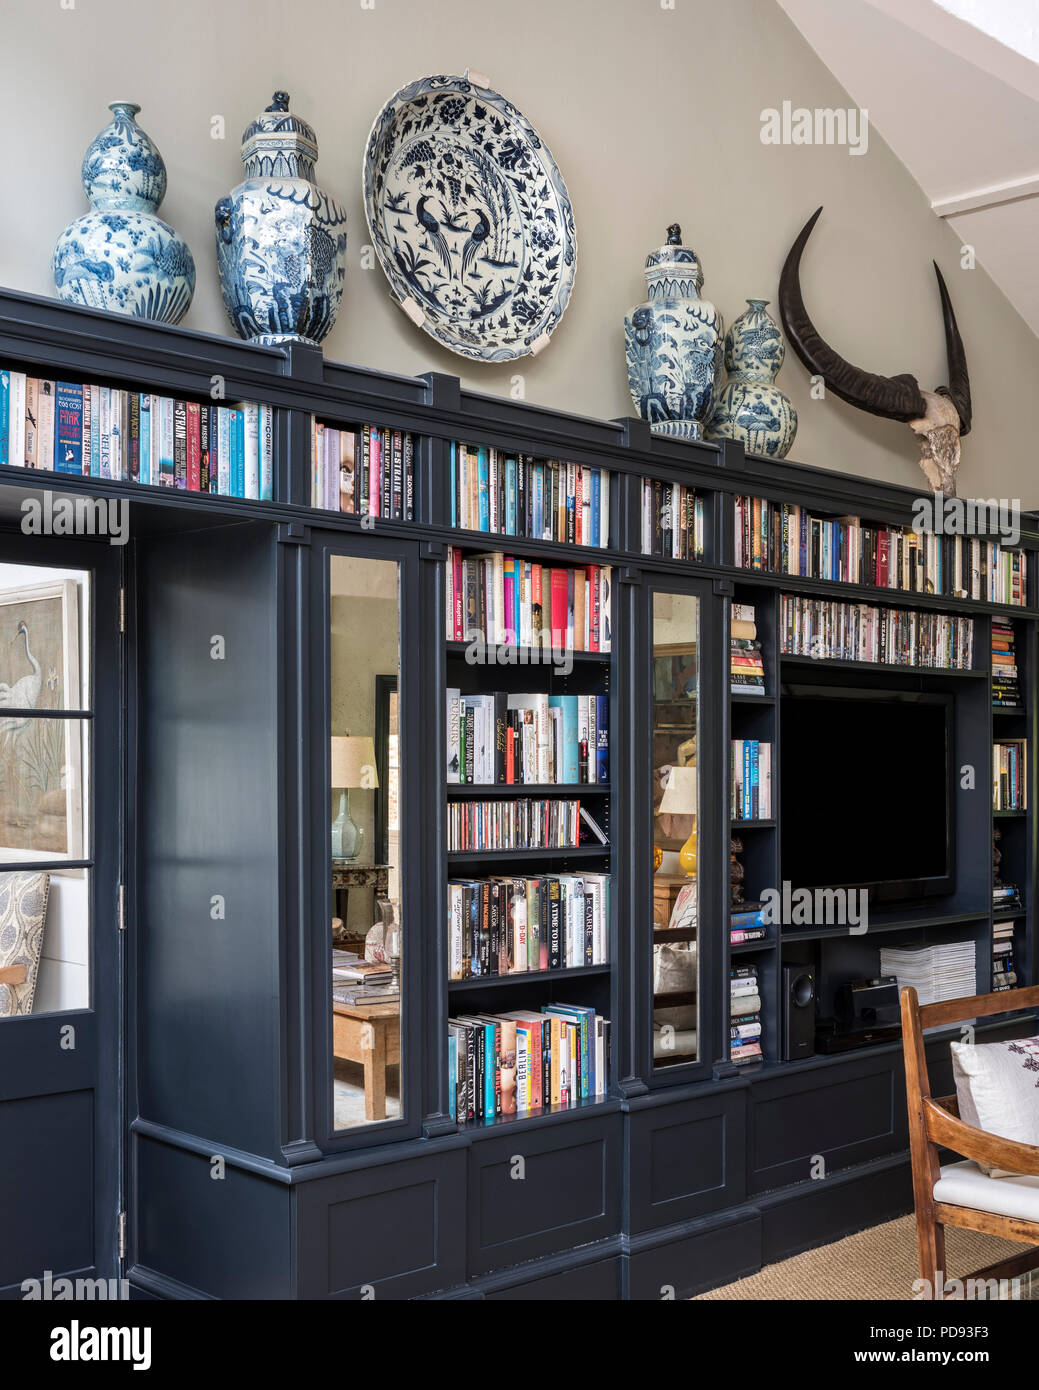 Blue and white pots on top of Farrow and Ball Downpipe, painted book shelves - Stock Image